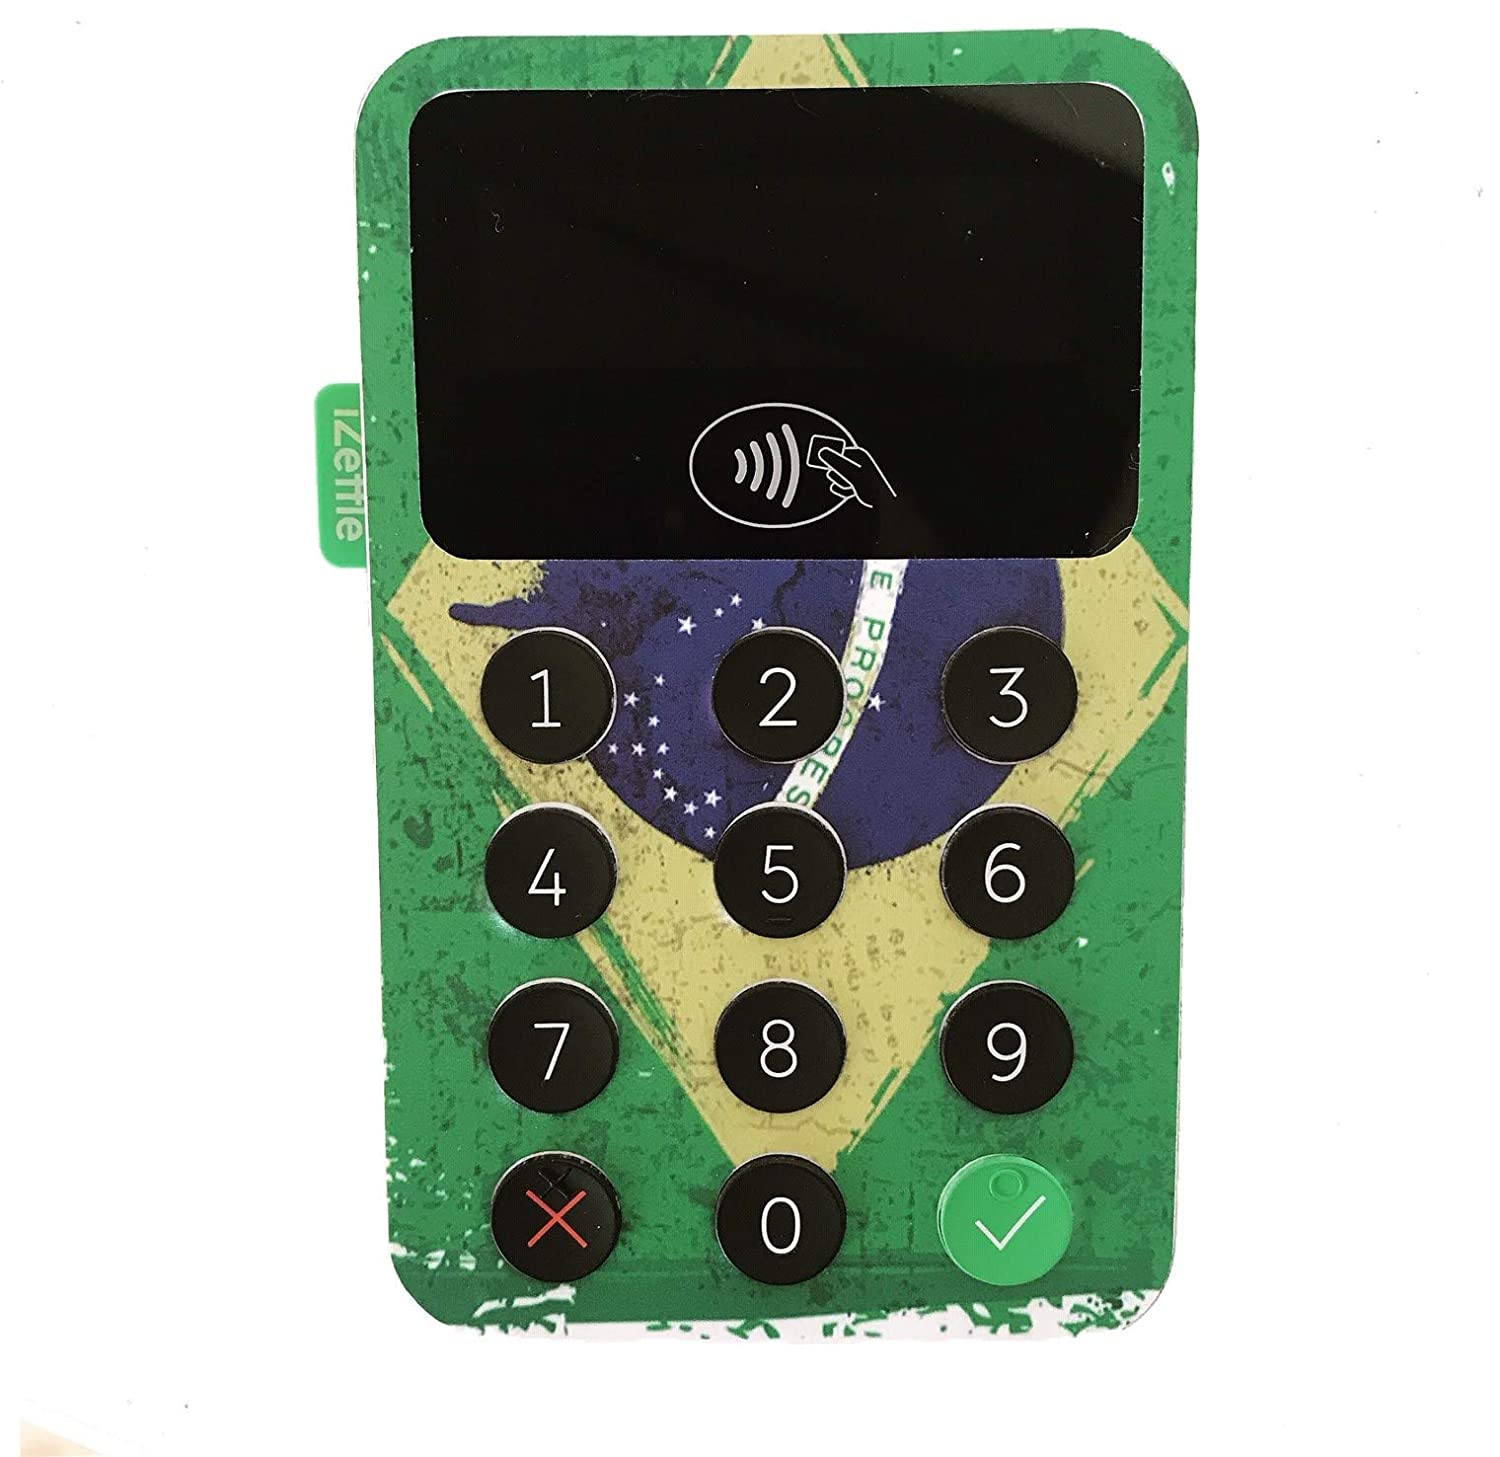 Personalise Your Card Reader Green Camo- 008 iZettle Card Reader 1 /& 2 Custom Skins